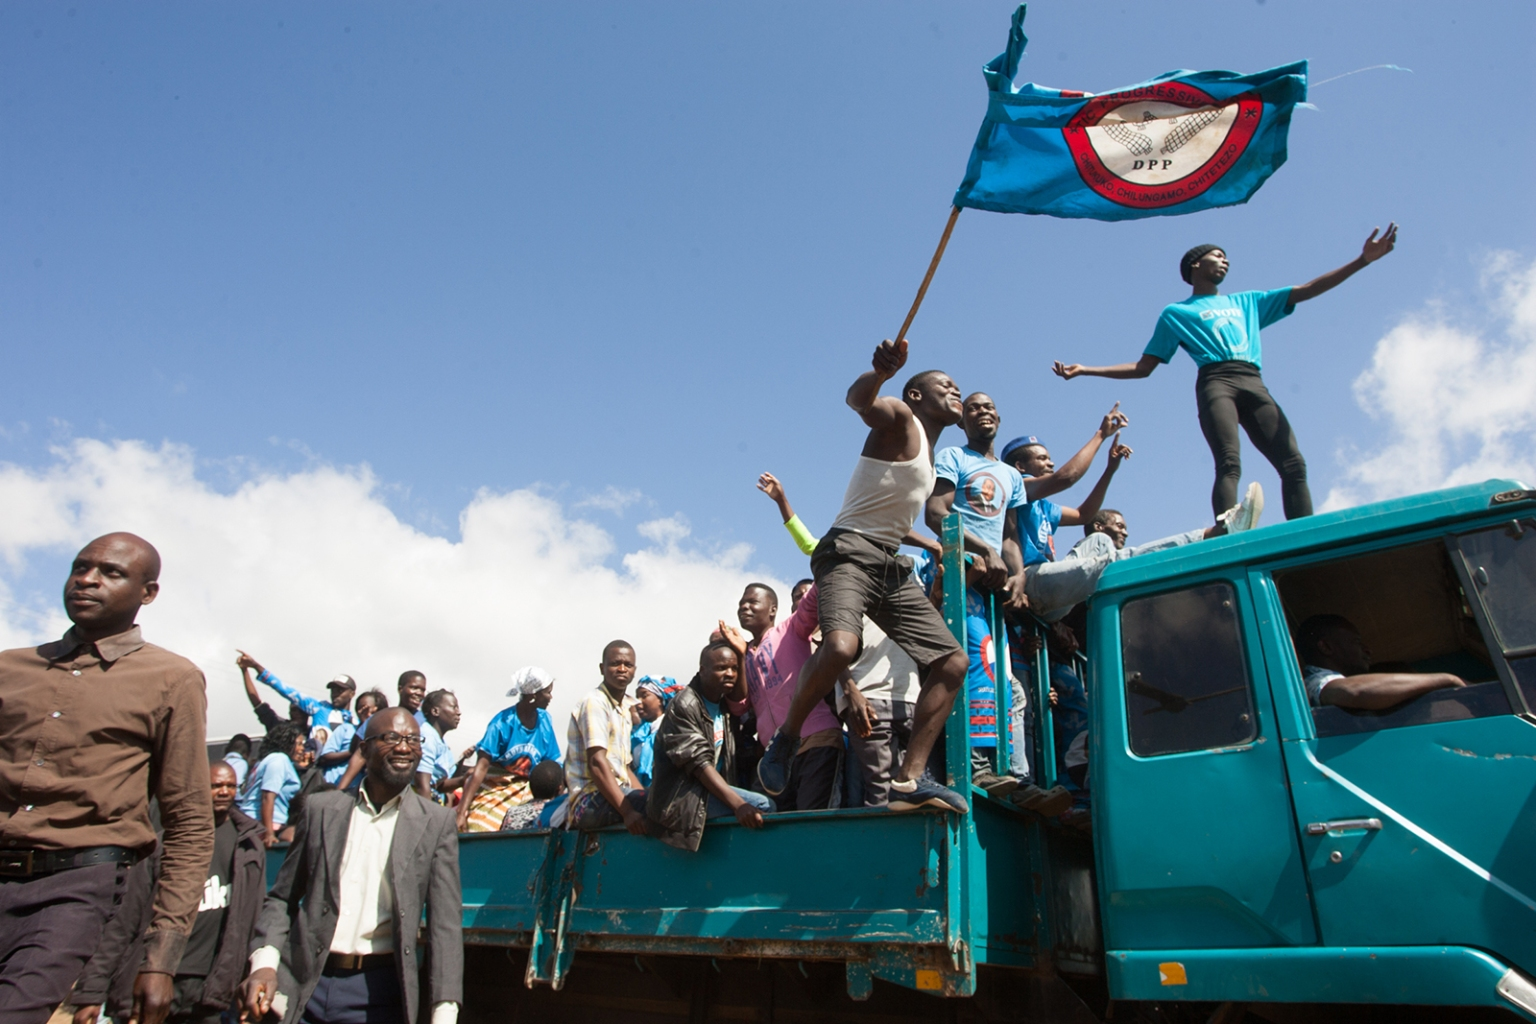 Supporters of Malawi's ruling Democratic Progressive Party celebrate during the swearing-in ceremony of president-elect Peter Mutharika at Kamuzu Stadium in Blantyre on May 28, after a contentious election marred by allegations of fraud and vote-rigging. AMOS GUMULIRA/AFP/Getty Images